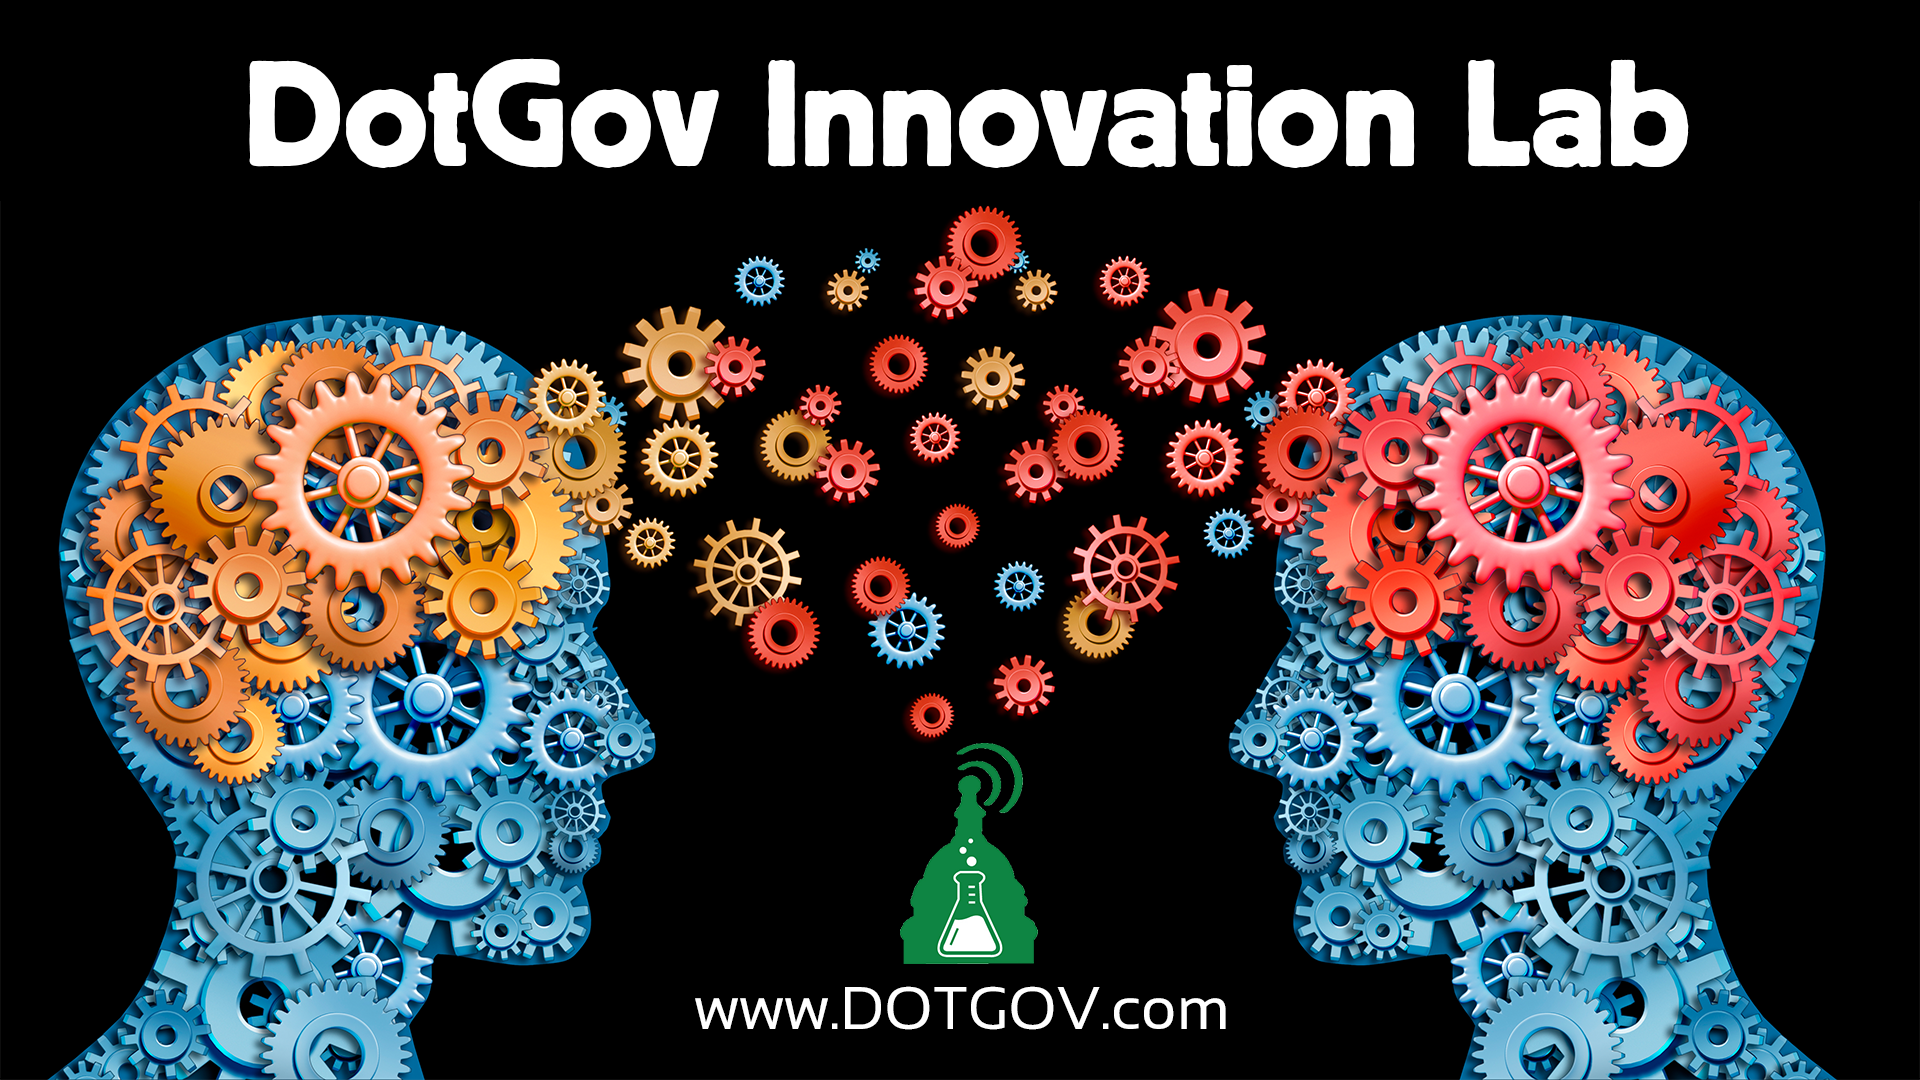 DotGov Innovation Lab